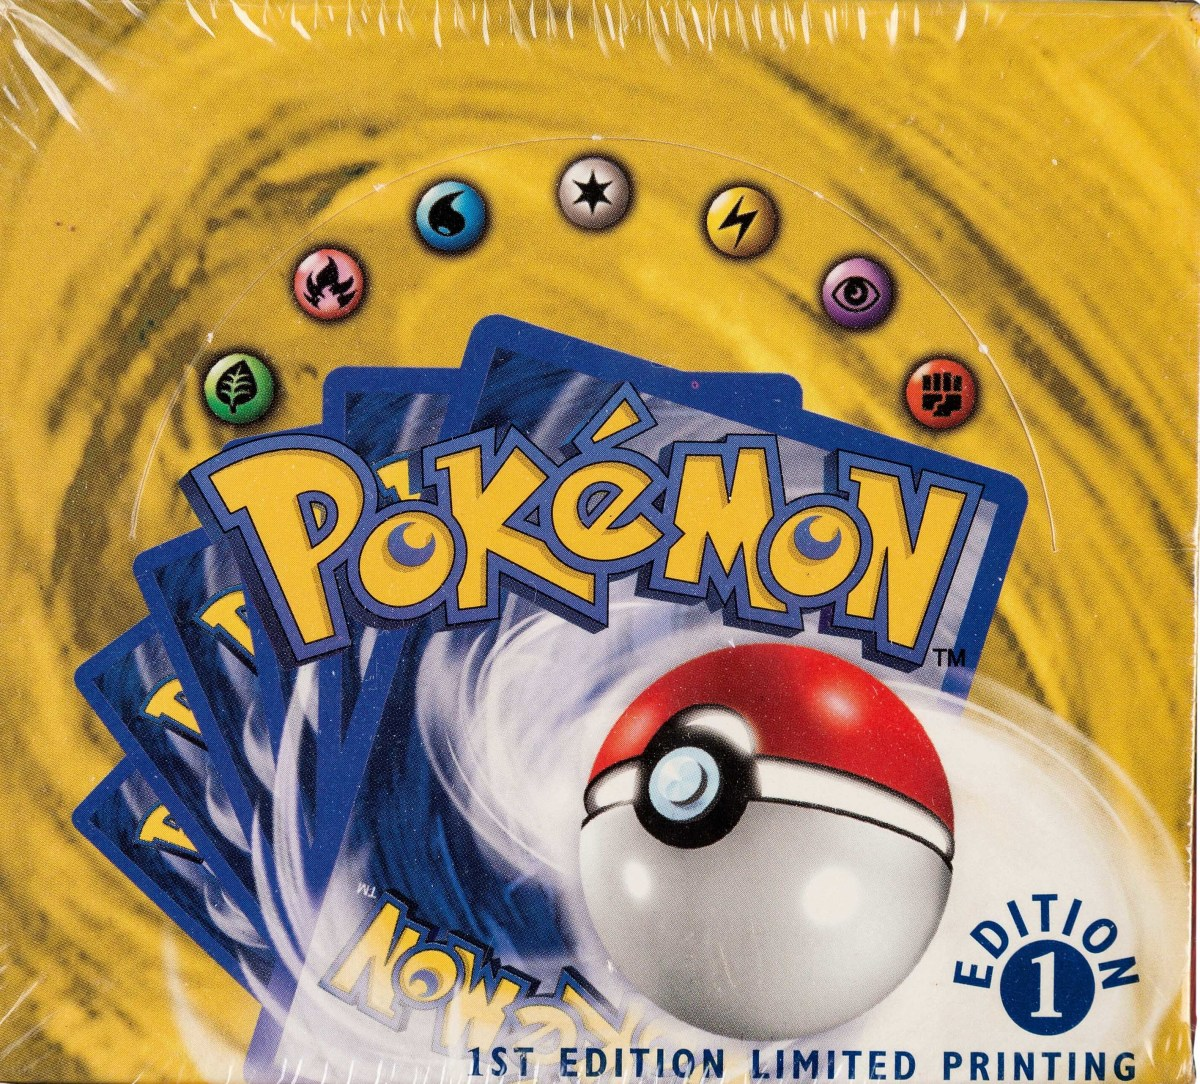 Pokémon First Edition Base Set sealed booster box, Wizards of the Coast, 1999.